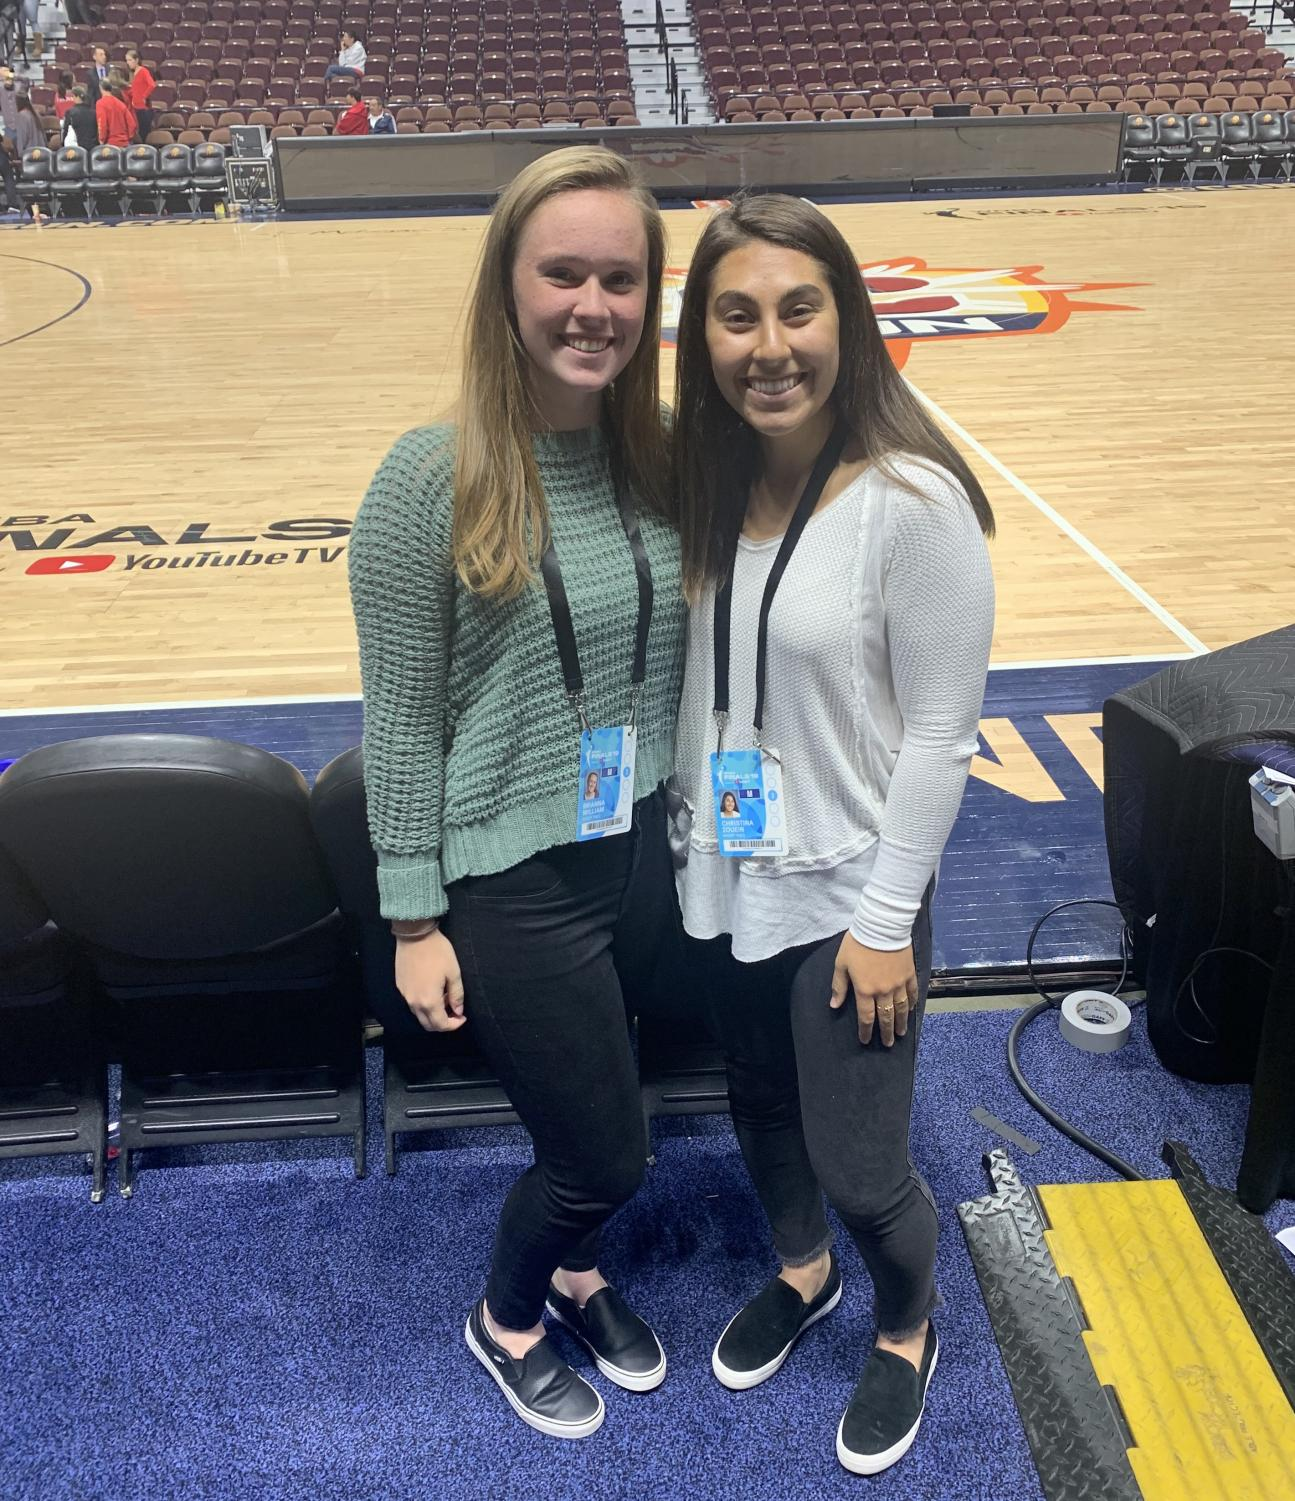 Raider Times reporters Brianna Williams (left) and Christina Zouein pose courtside after covering Game 3 of the WNBA Finals at Mohegan Sun Arena on Oct. 6, 2019.